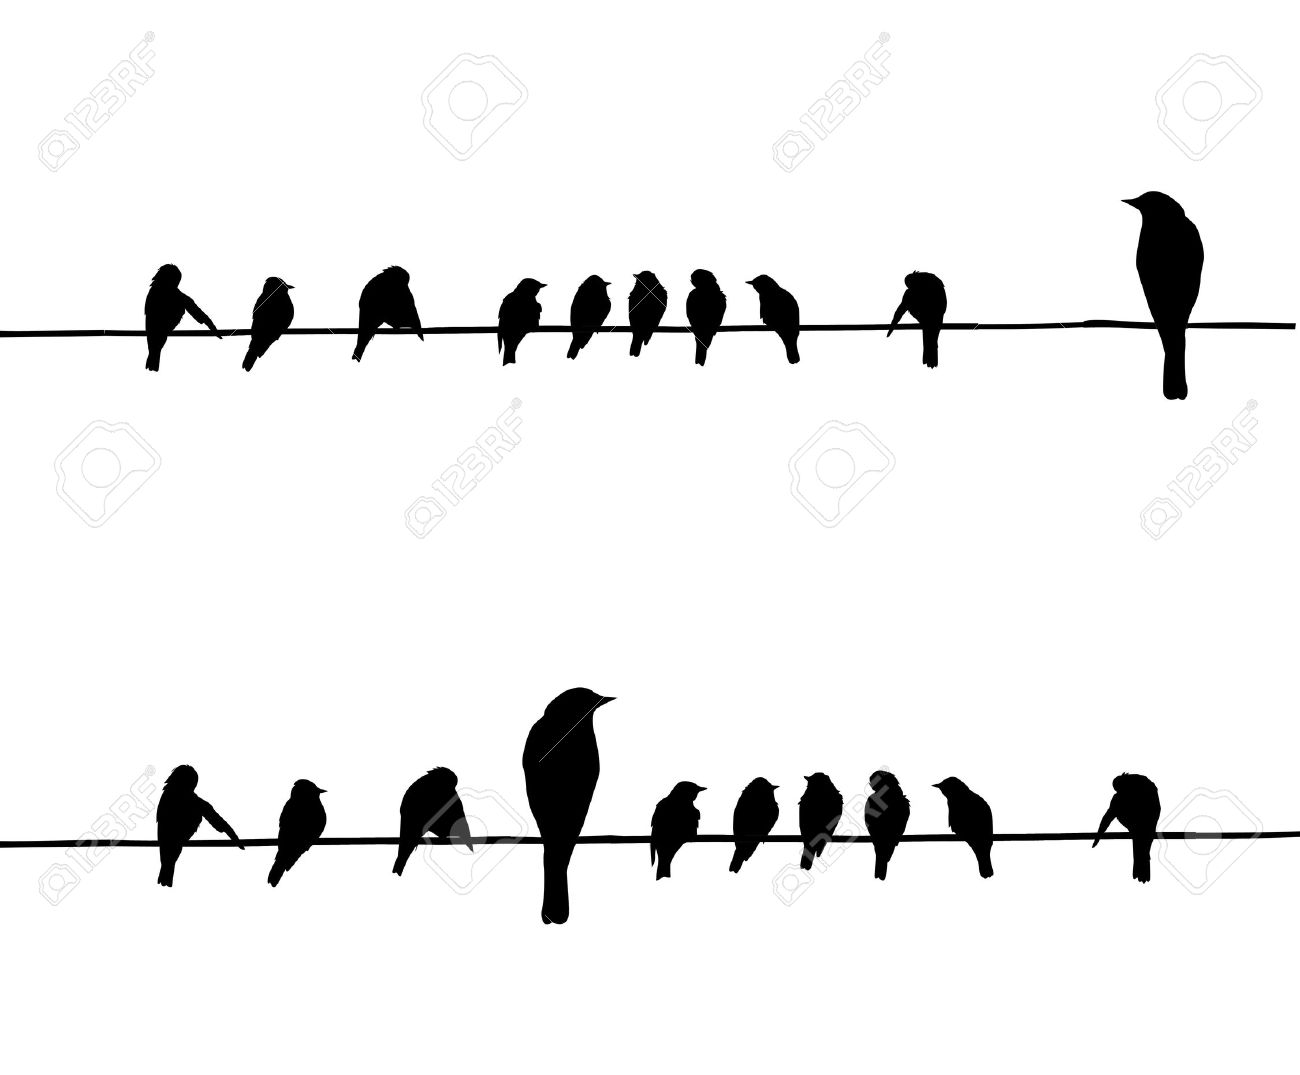 bird on a wire stock photos royalty free bird on a wire images